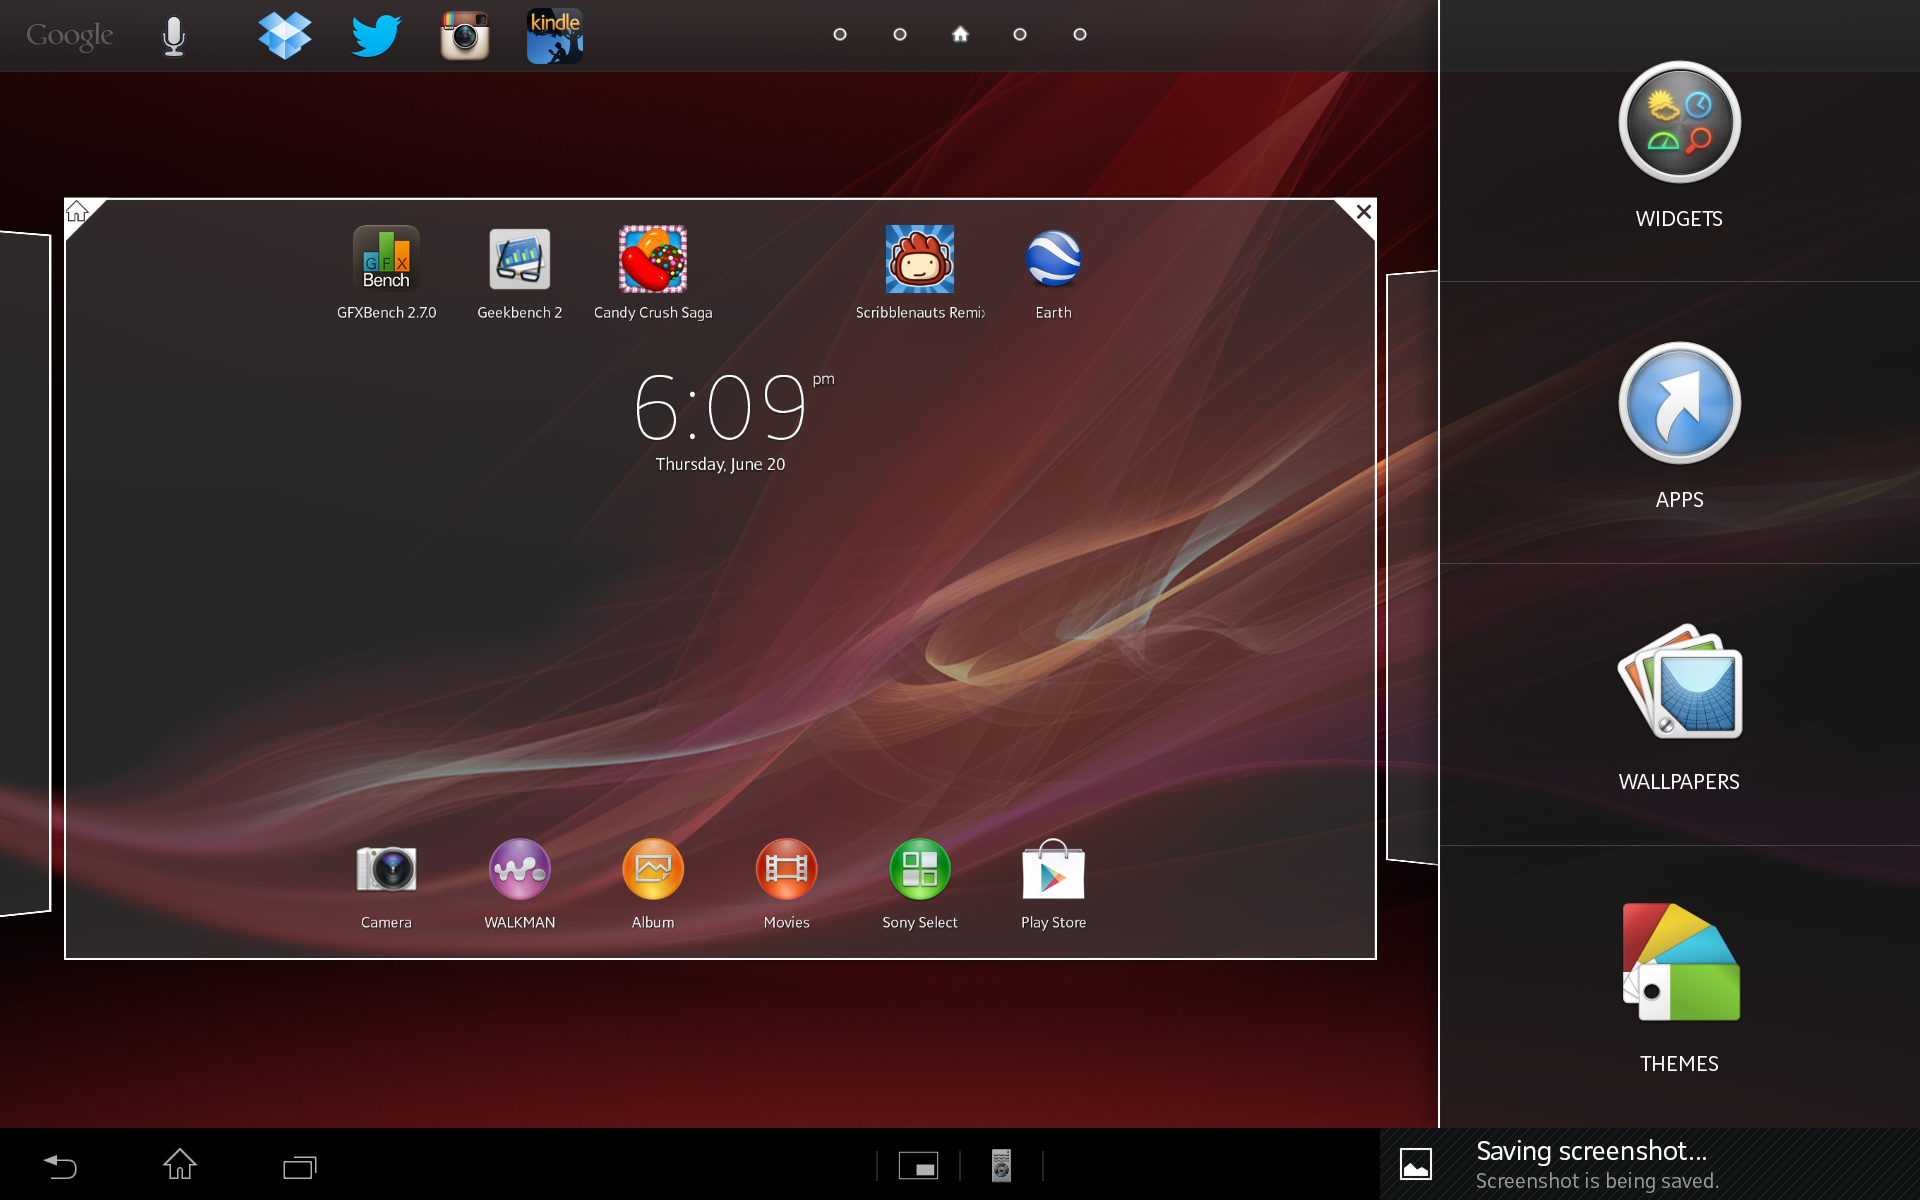 You can add apps, widgets, or whatever you choose to the home screen.